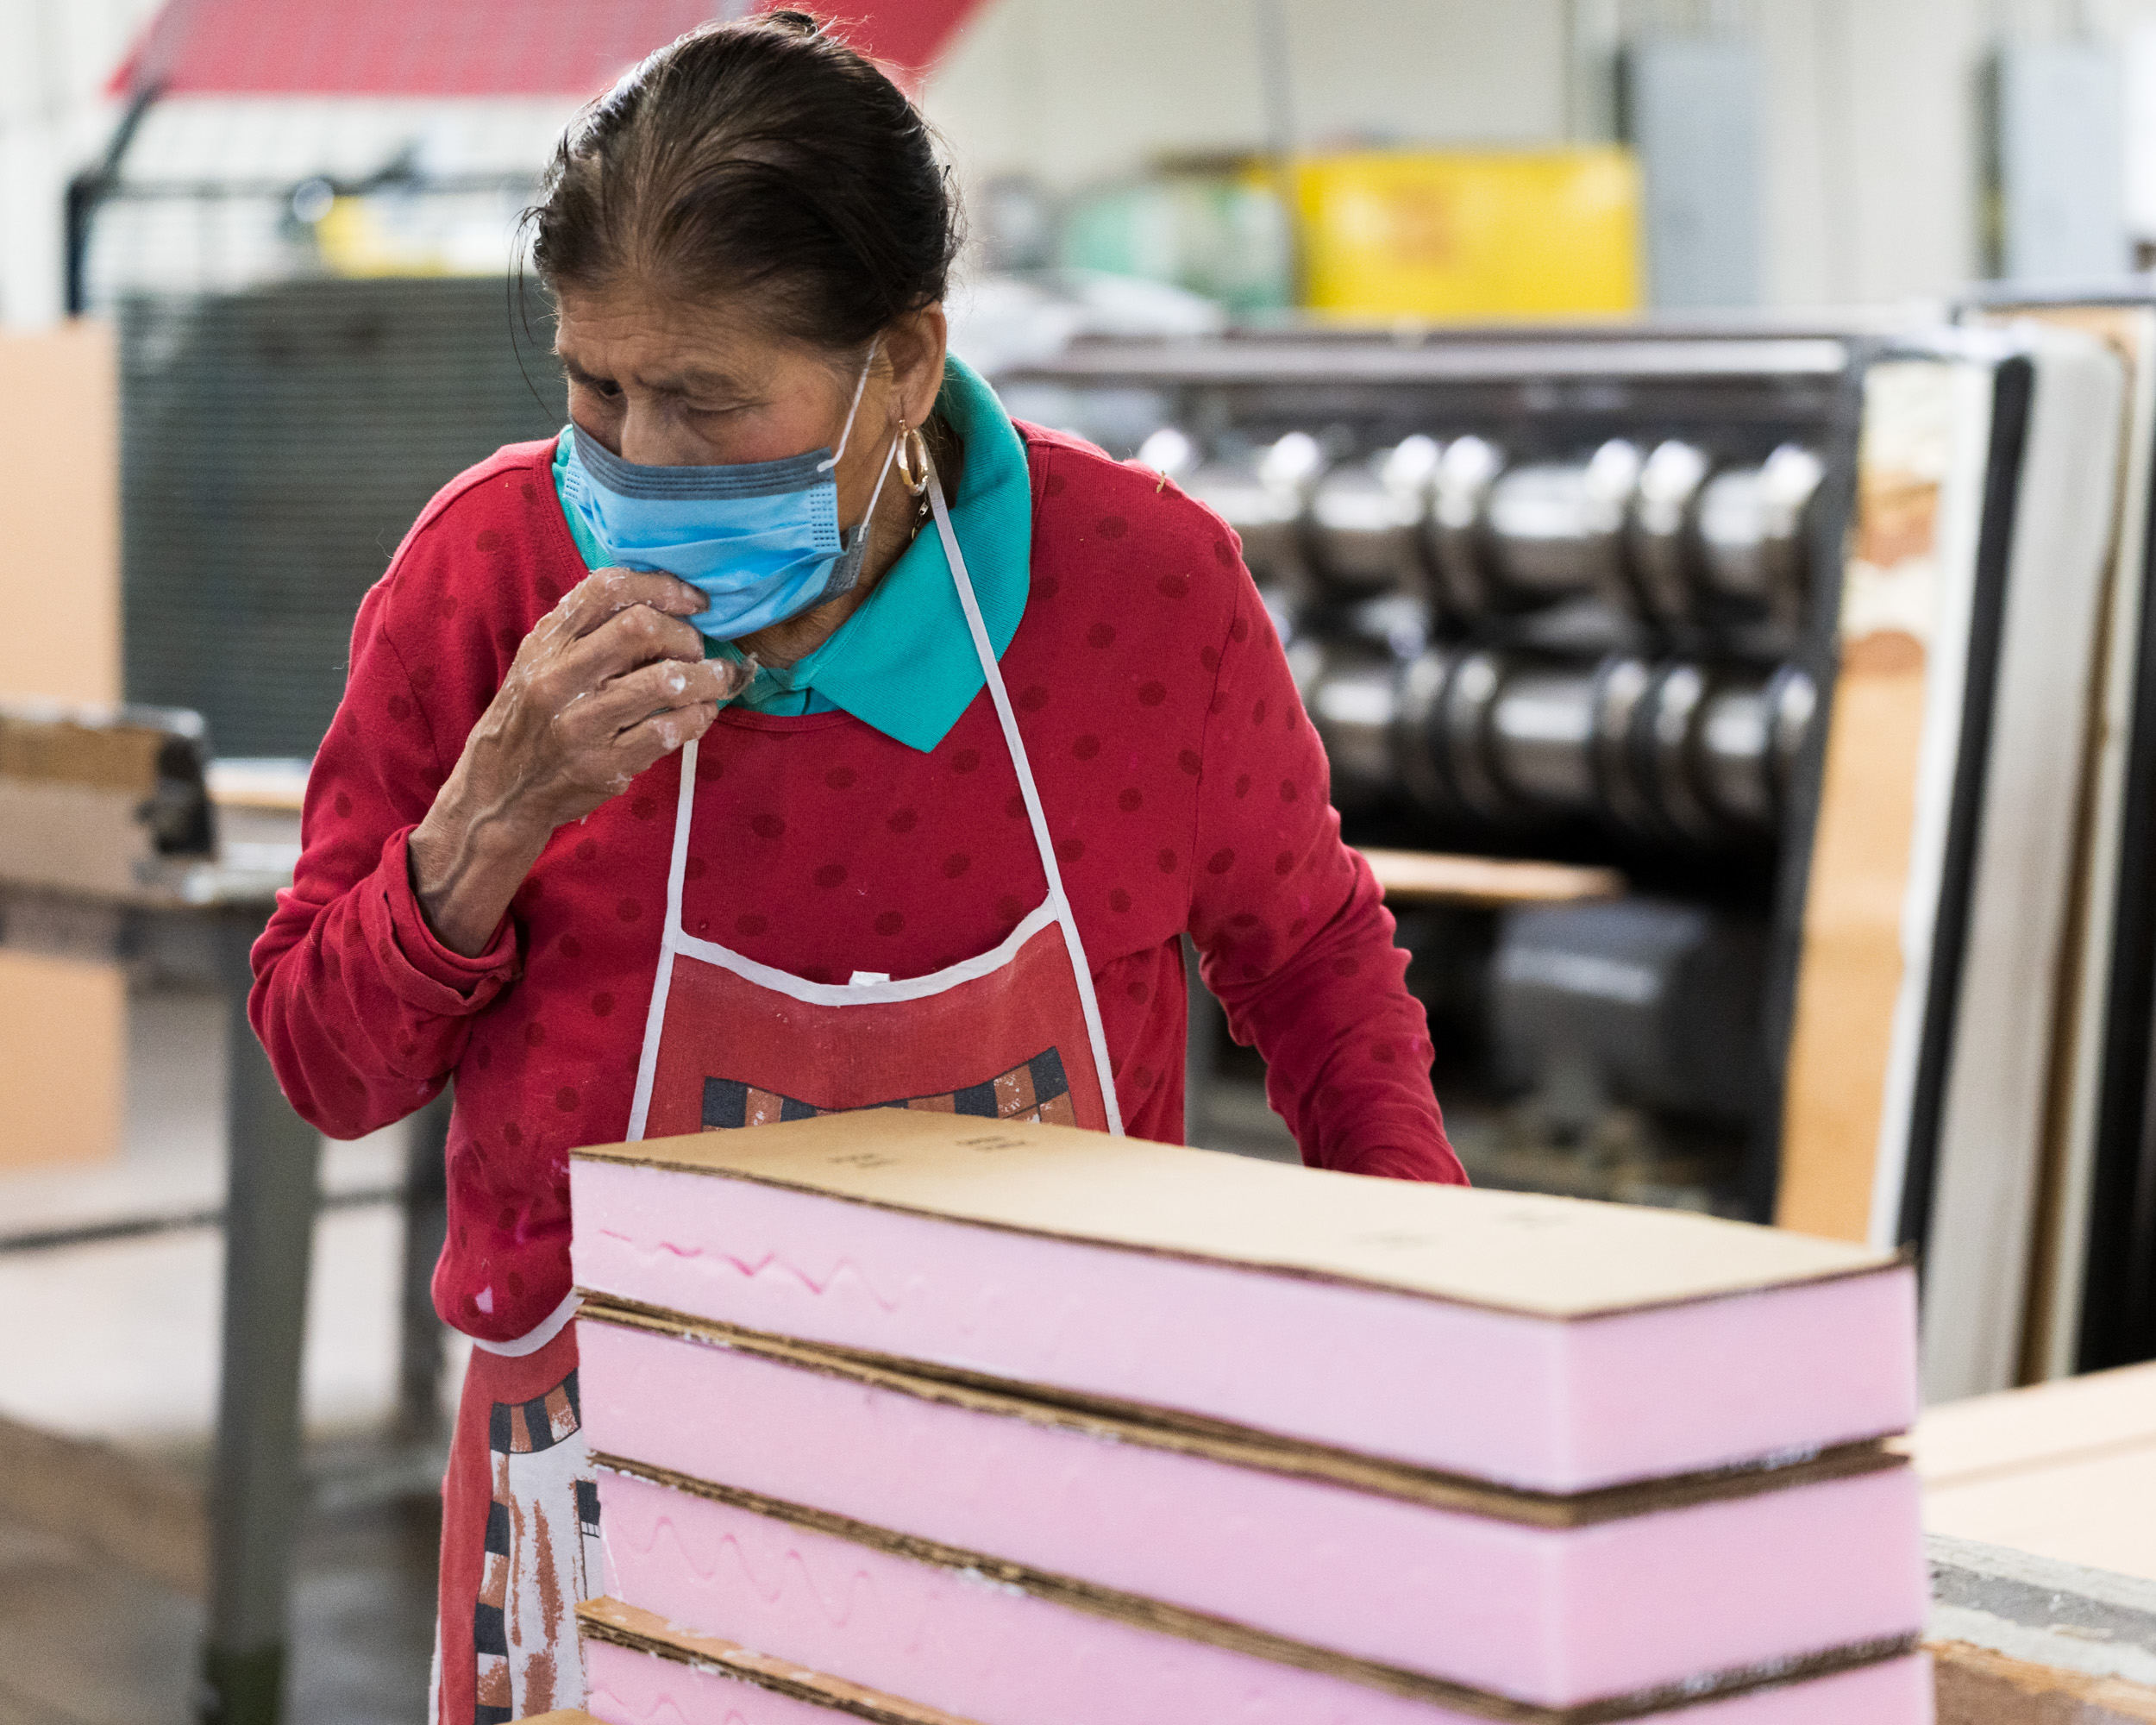 A woman with a mask on walking away from pink foam pads stacked on top of each other